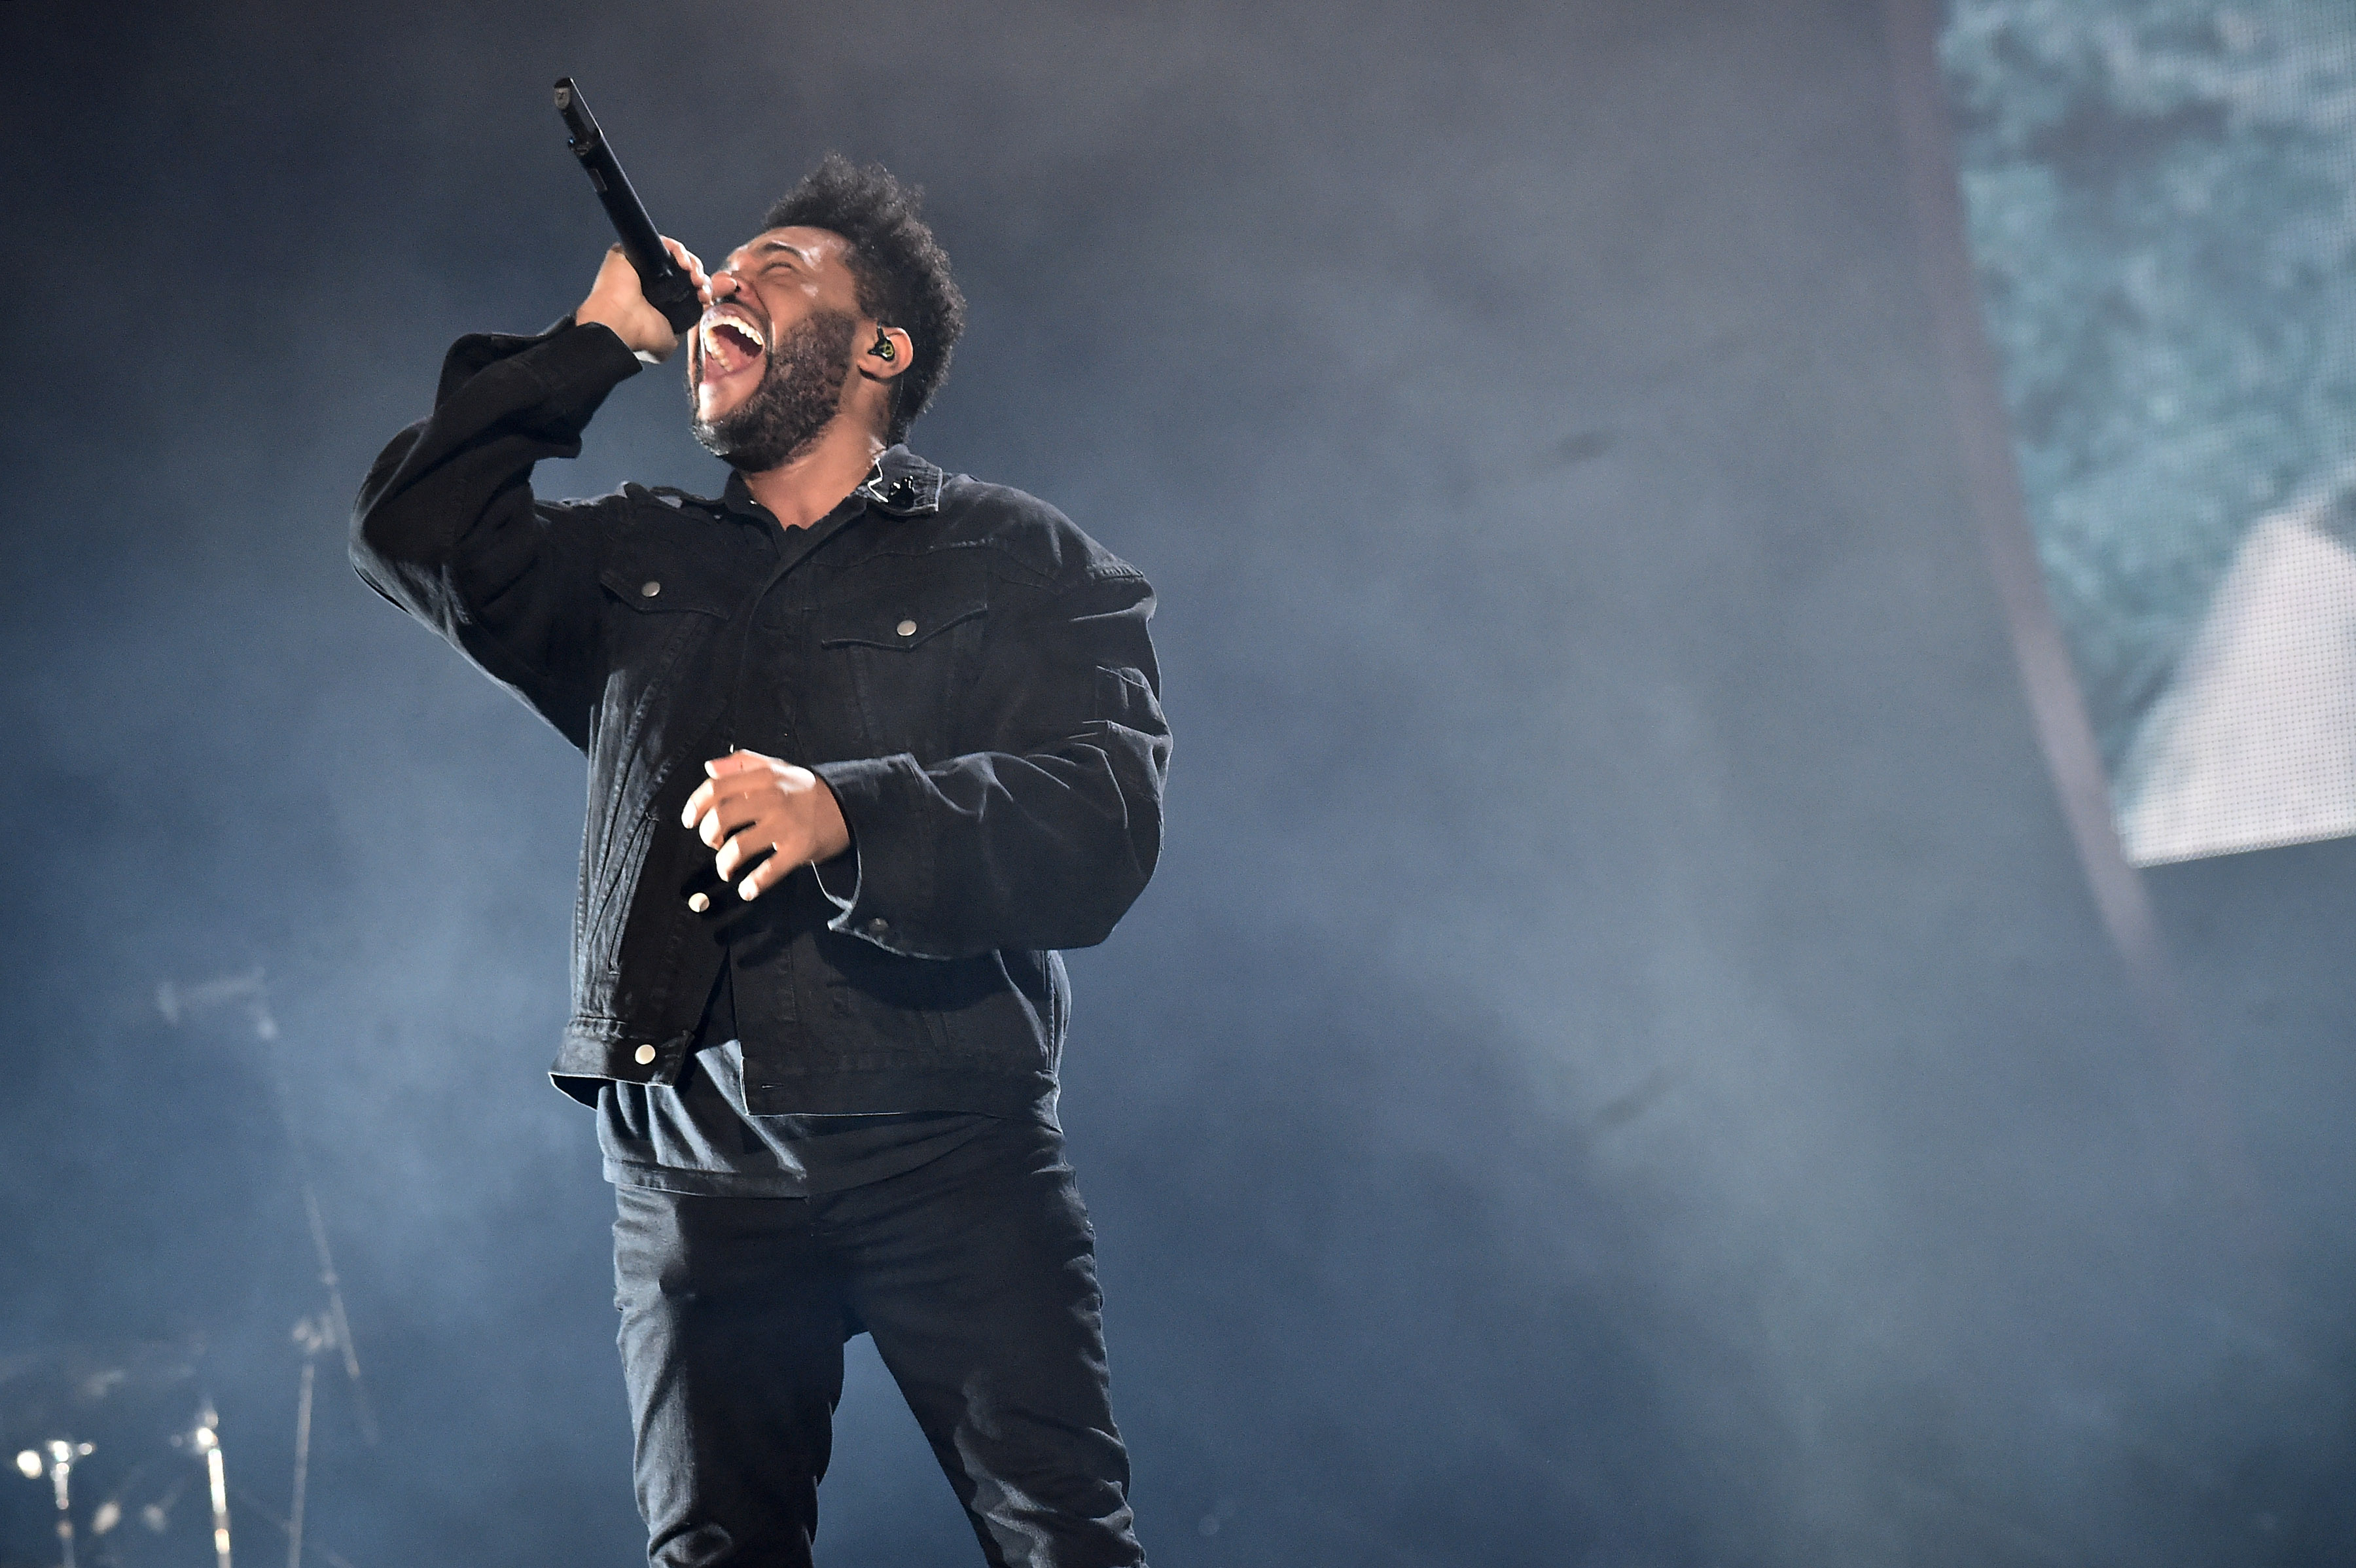 The Weeknd performing live wearing an all black outfit and singing into a wireless microphone.